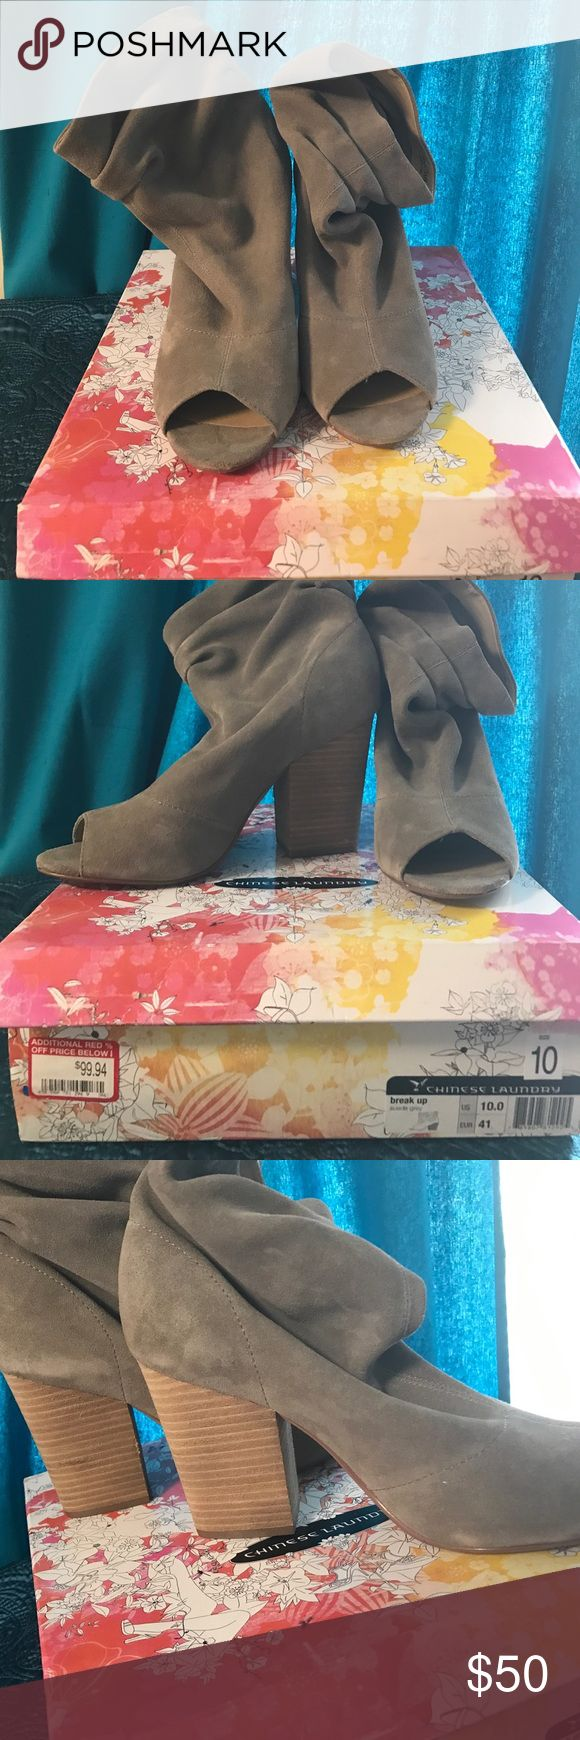 Barely worn Grey suede peep toe booties size 10. Barely worn grey suede peep toe bootie by Chinese Laundry size 10. The top of the bootie has a slouch style. There are minor areas as pictured that are light, but keep in mind the boots are suede. I have the original box. I accept offers. Chinese Laundry Shoes Ankle Boots & Booties